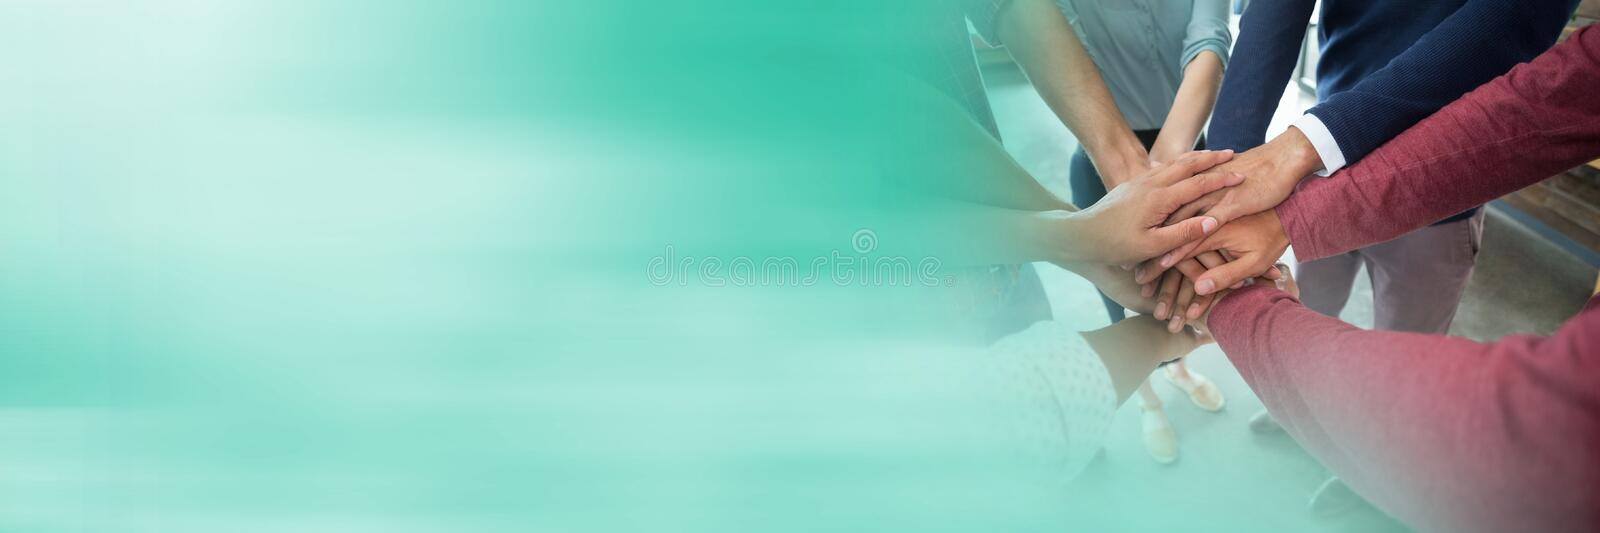 Creative team putting hands together and blurry teal transition stock images